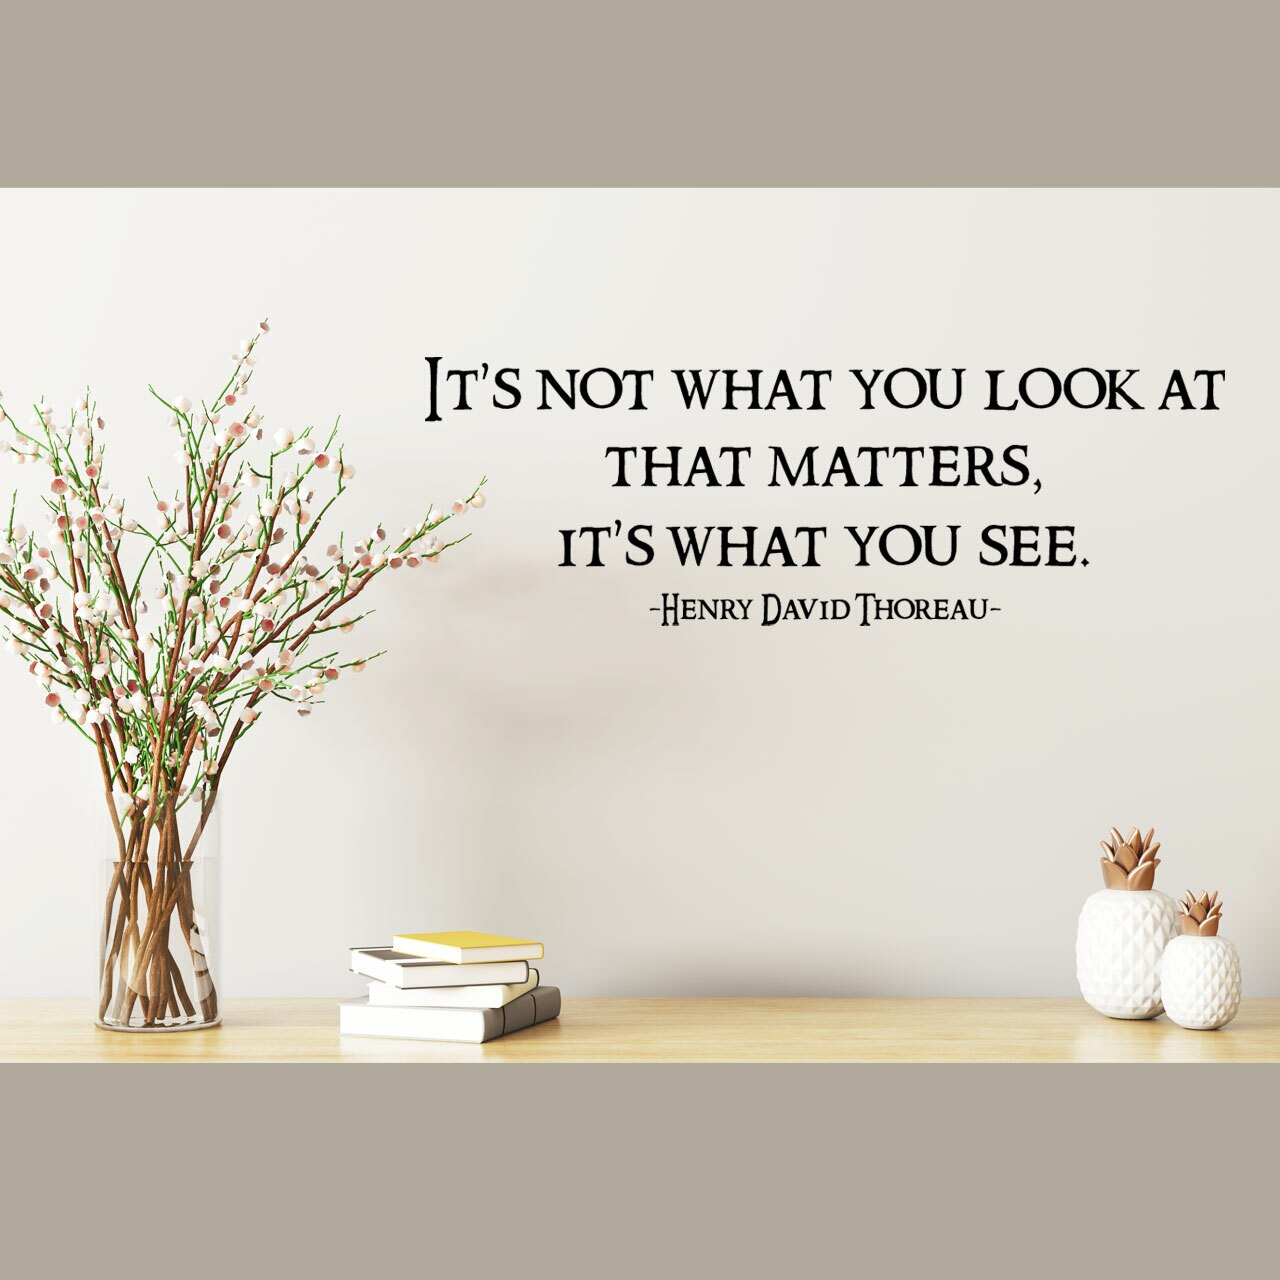 It's not what you look at it's what you see -Henry David Thoreau written in black vinyl lettering on a white wall over flowers in a vase, books, and decorative ceramic pieces